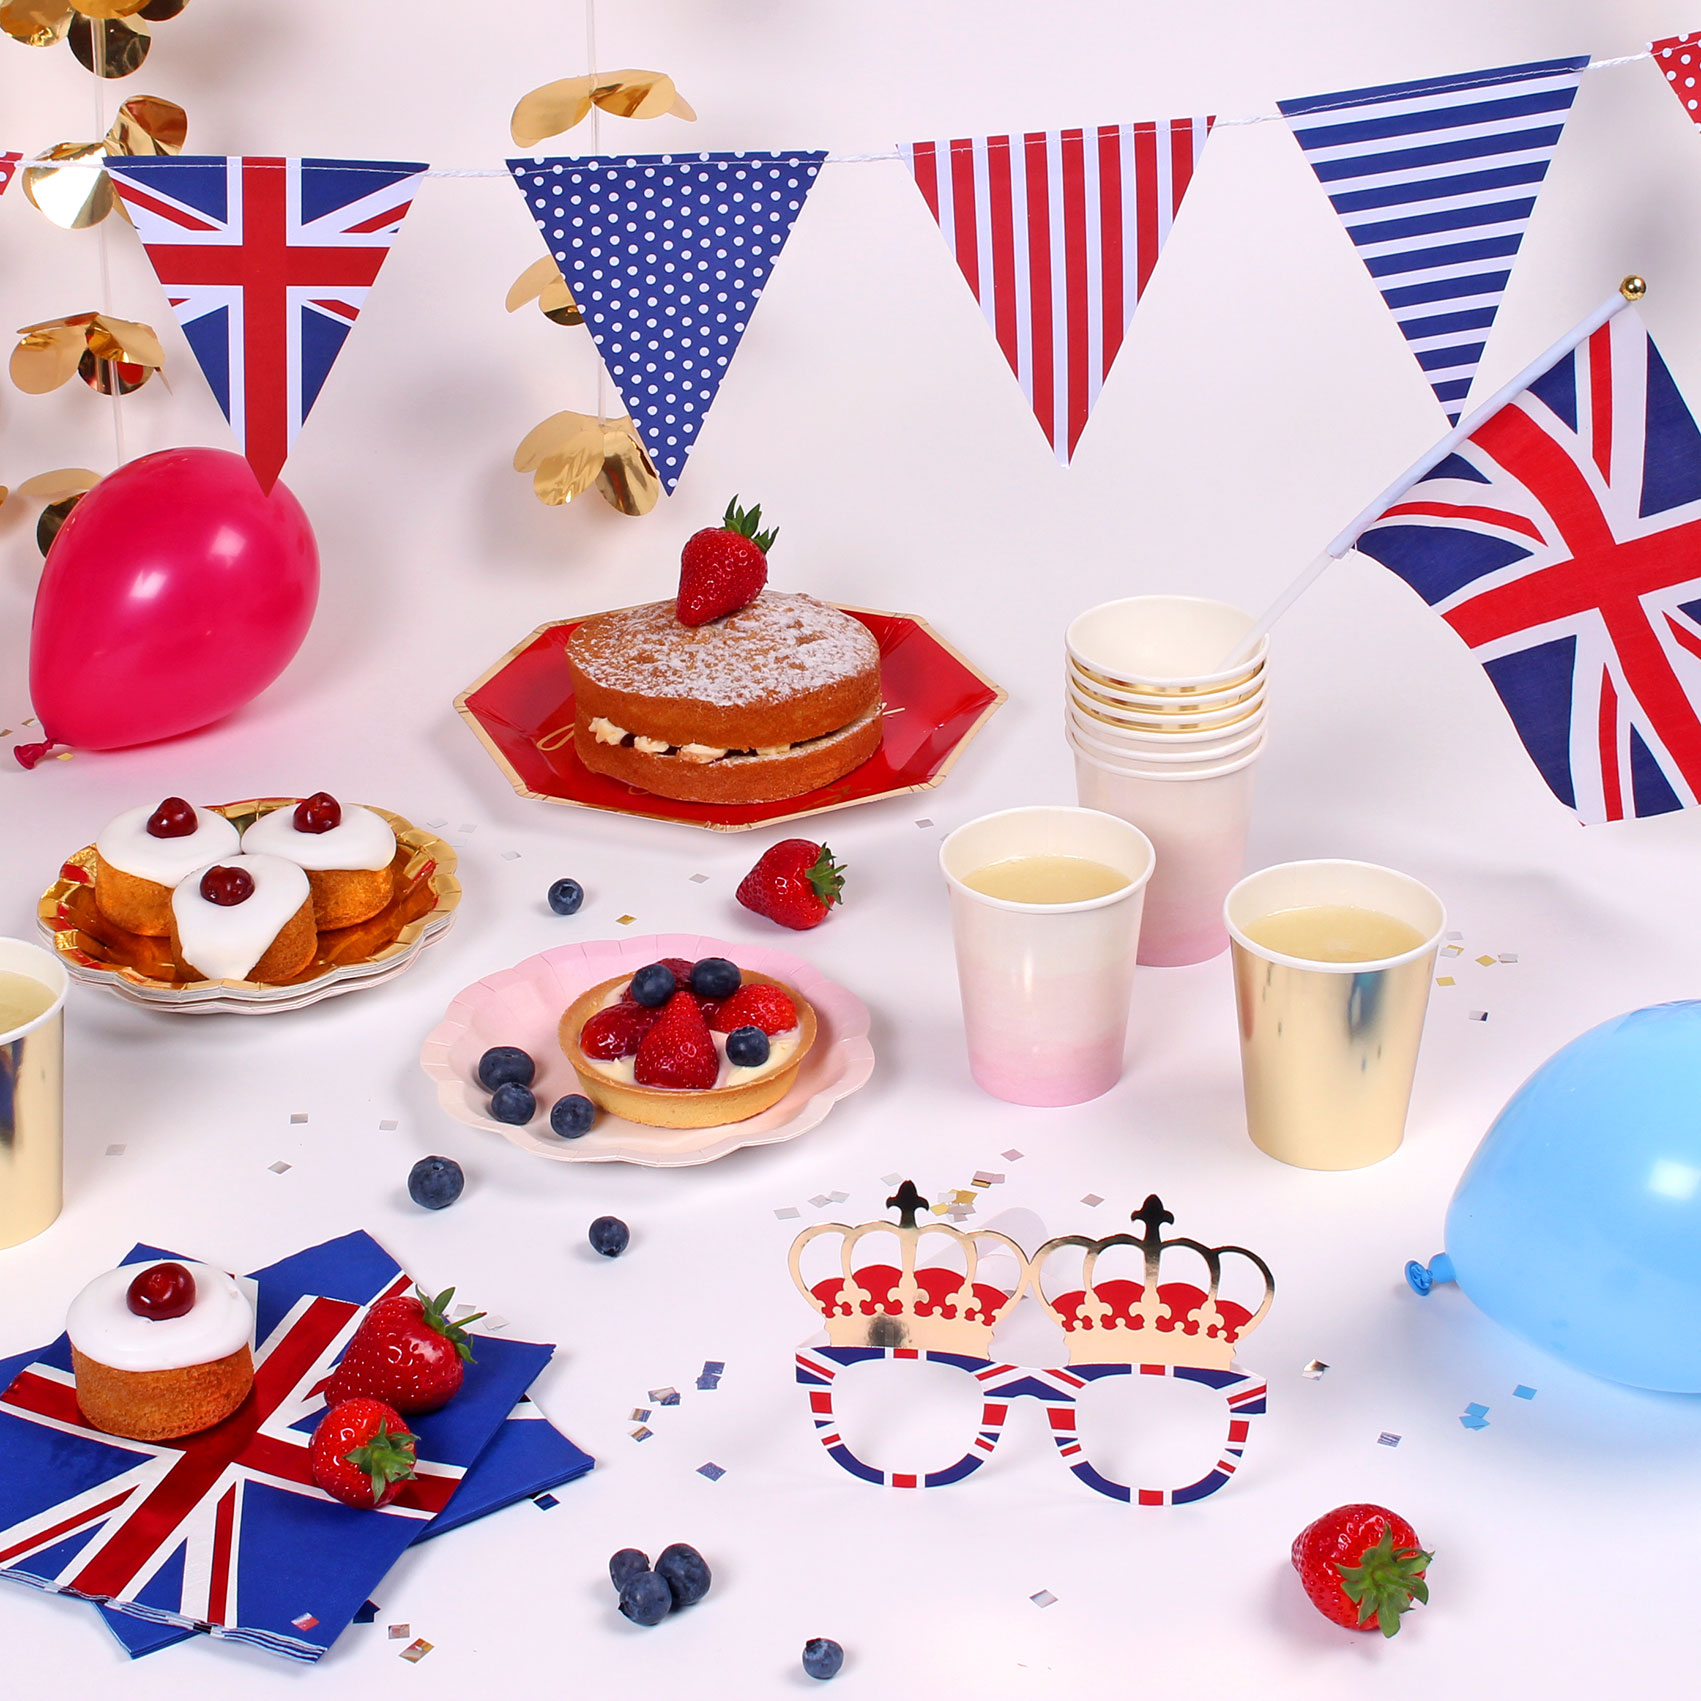 PAPERCHASE-GREAT-BRITISH-STREET-PARTY-ROYAL-WEDDING-MAIN